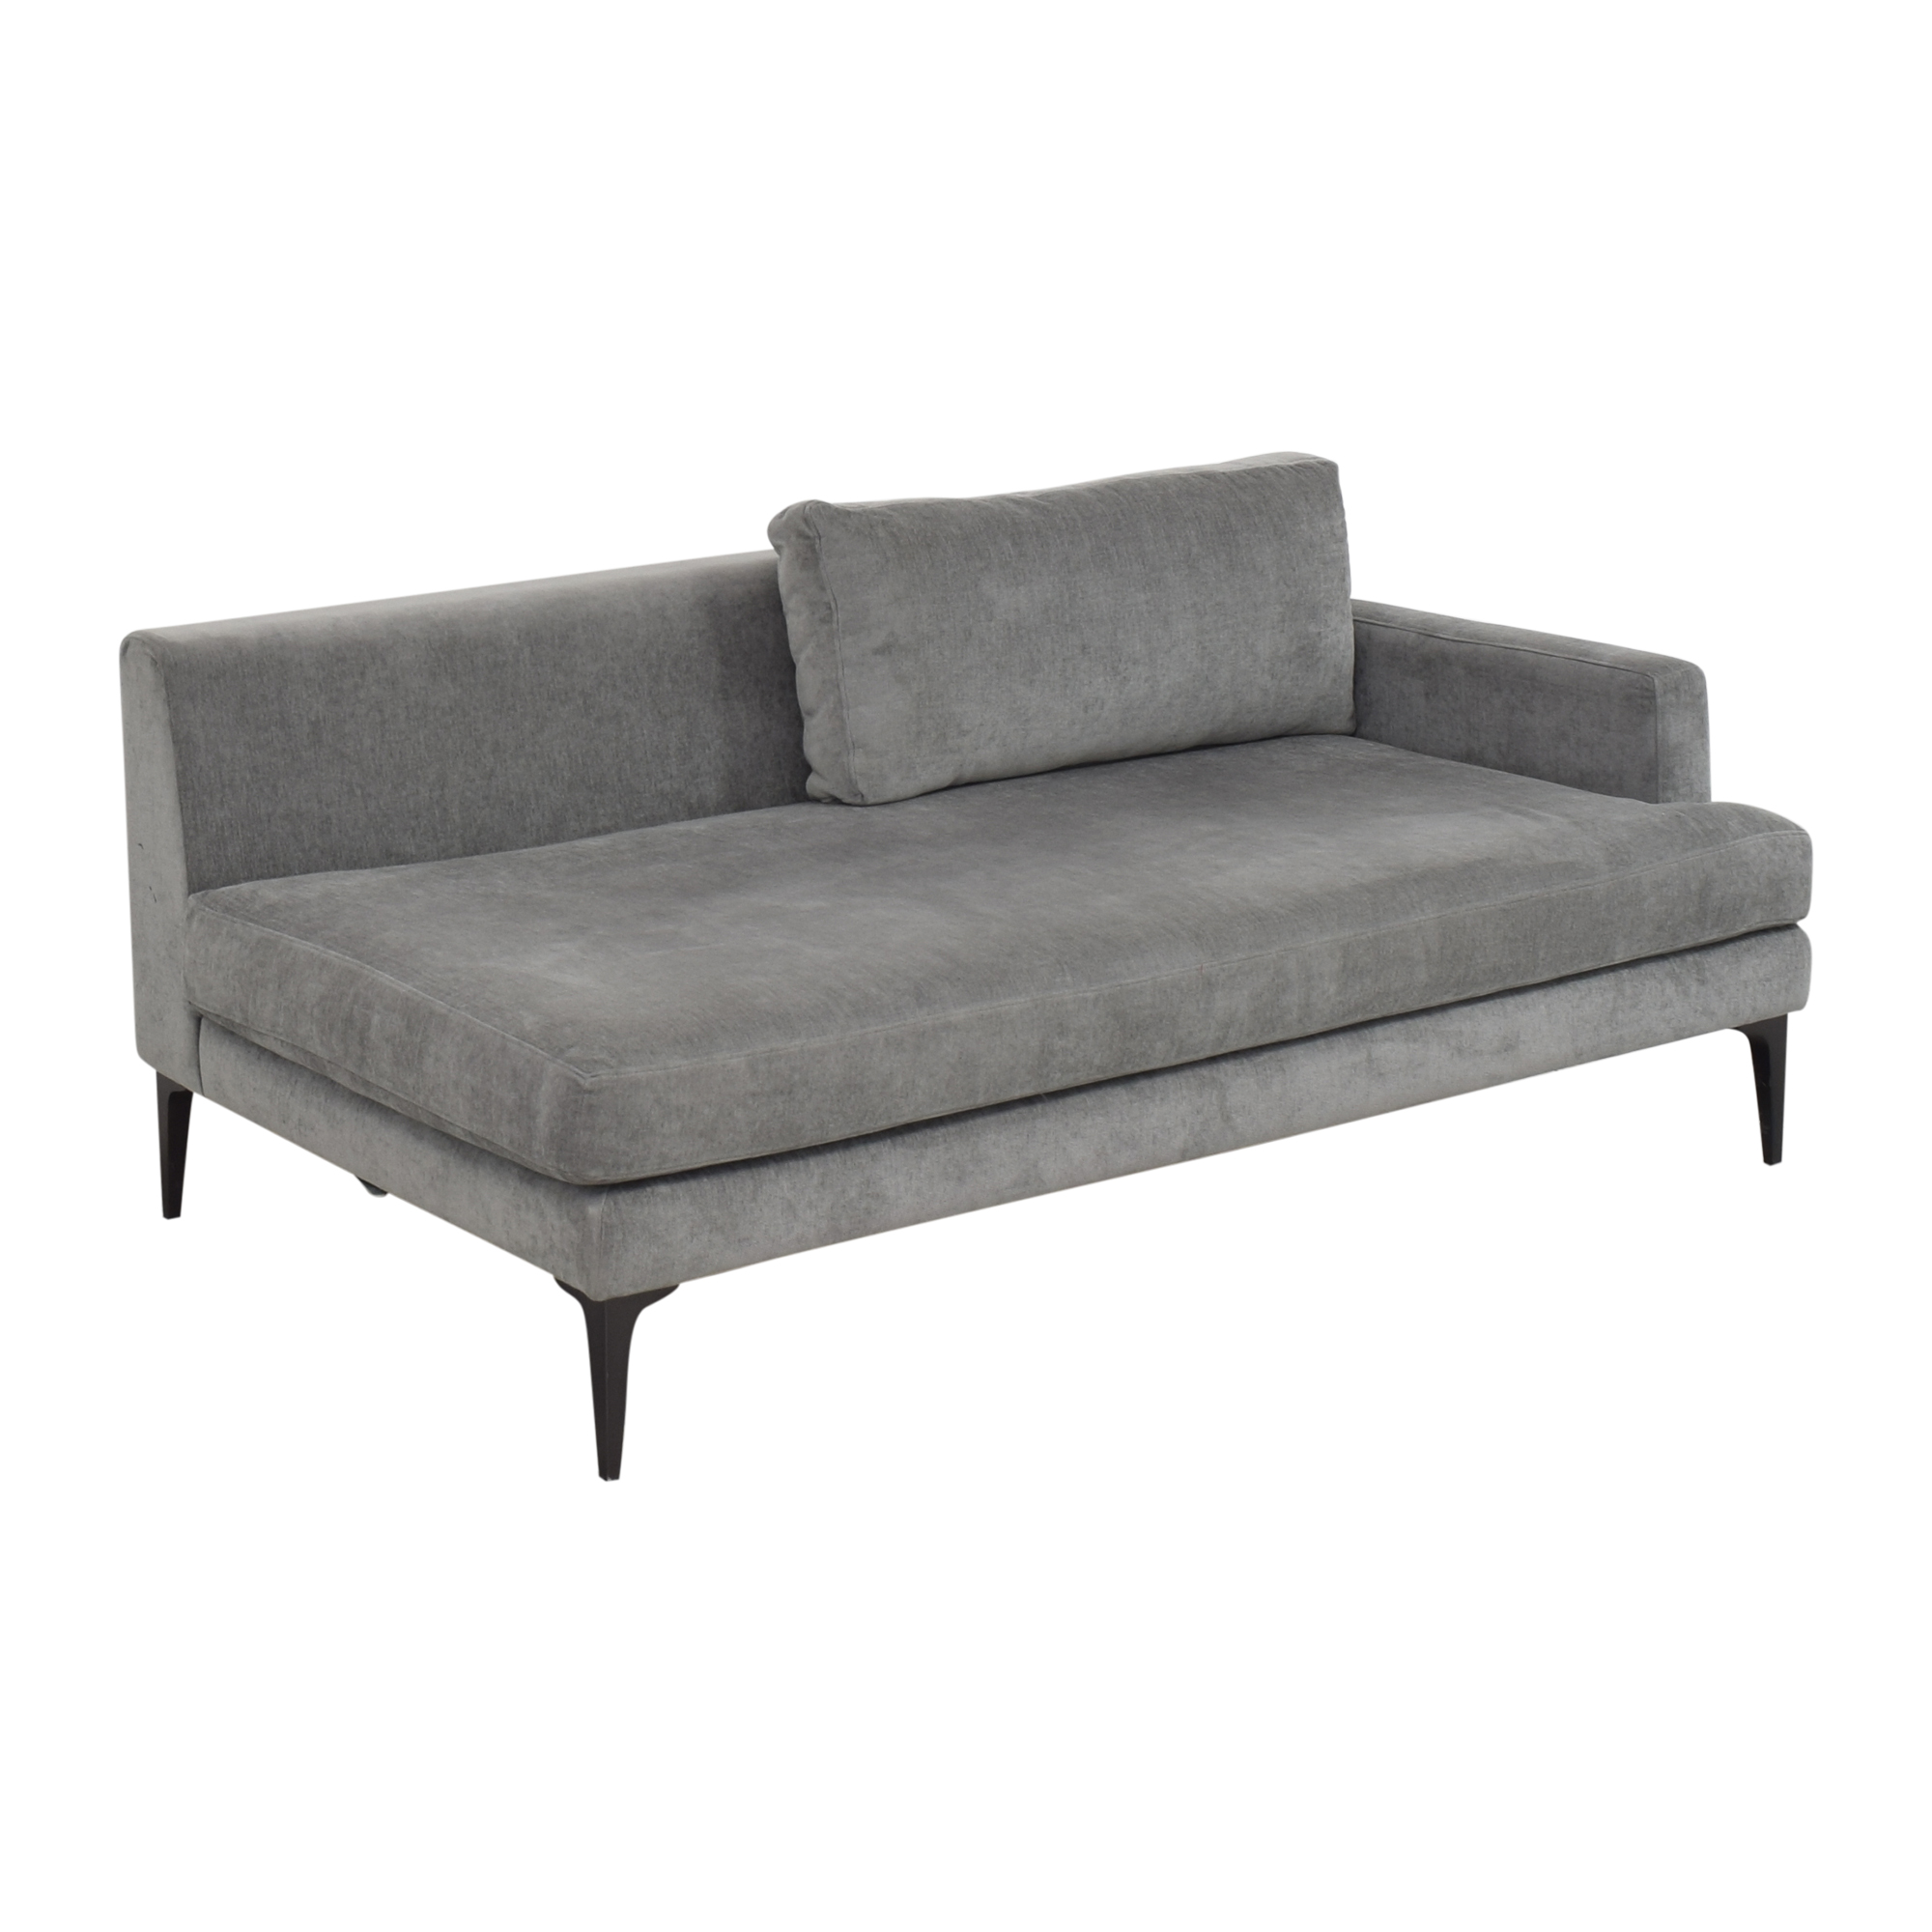 West Elm Andes Right Arm Sofa / Sofas